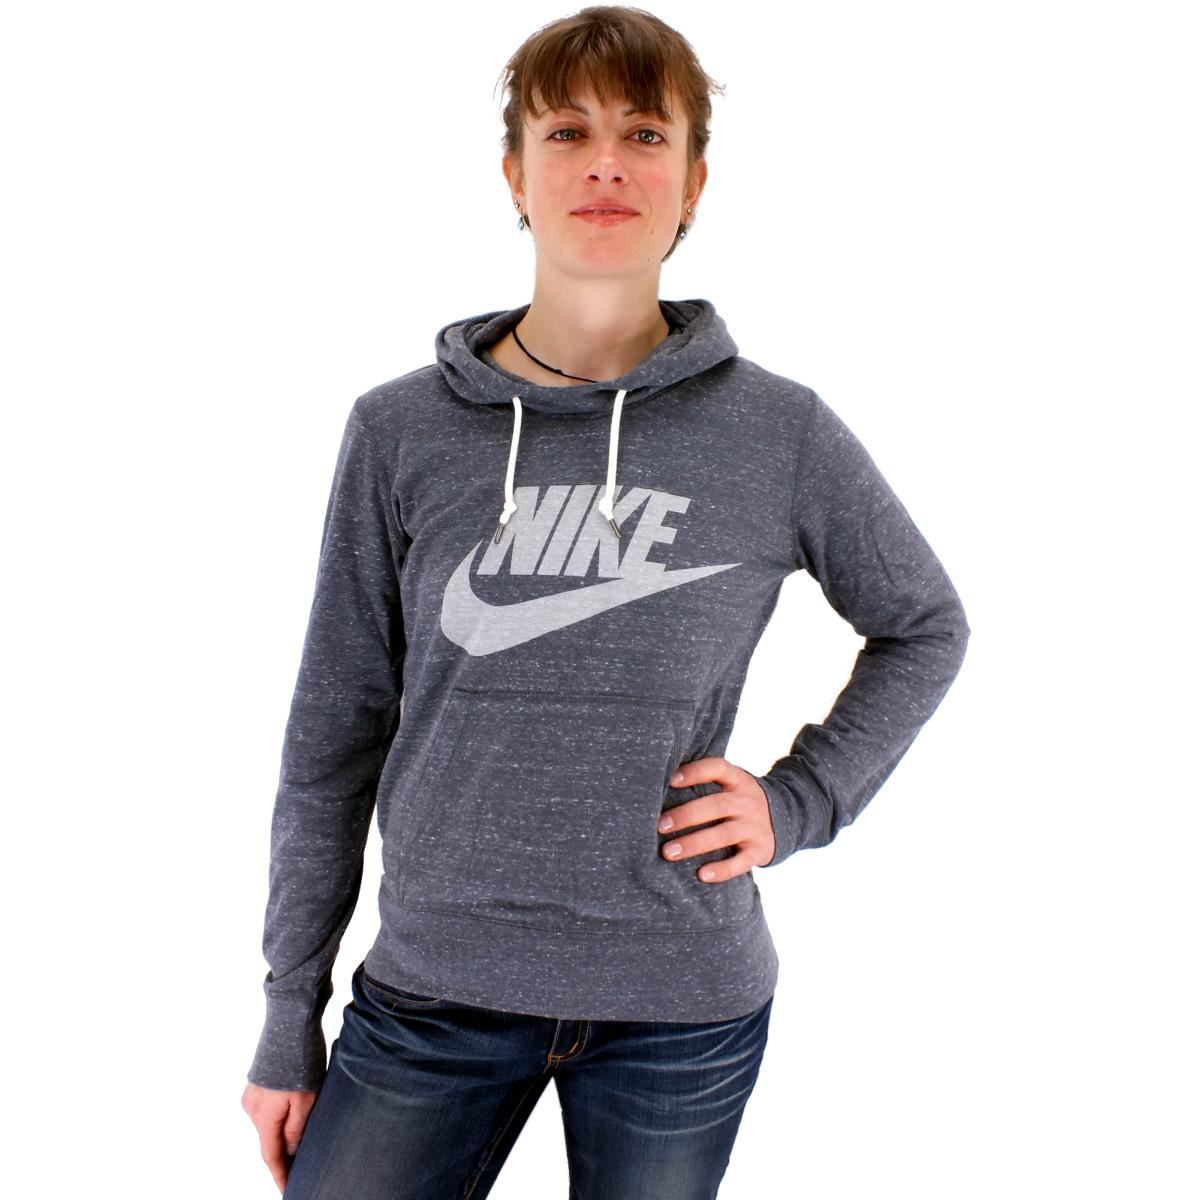 nike gym vintage hoody damen pullover kapuzenpullover sweatshirt grau blau ebay. Black Bedroom Furniture Sets. Home Design Ideas